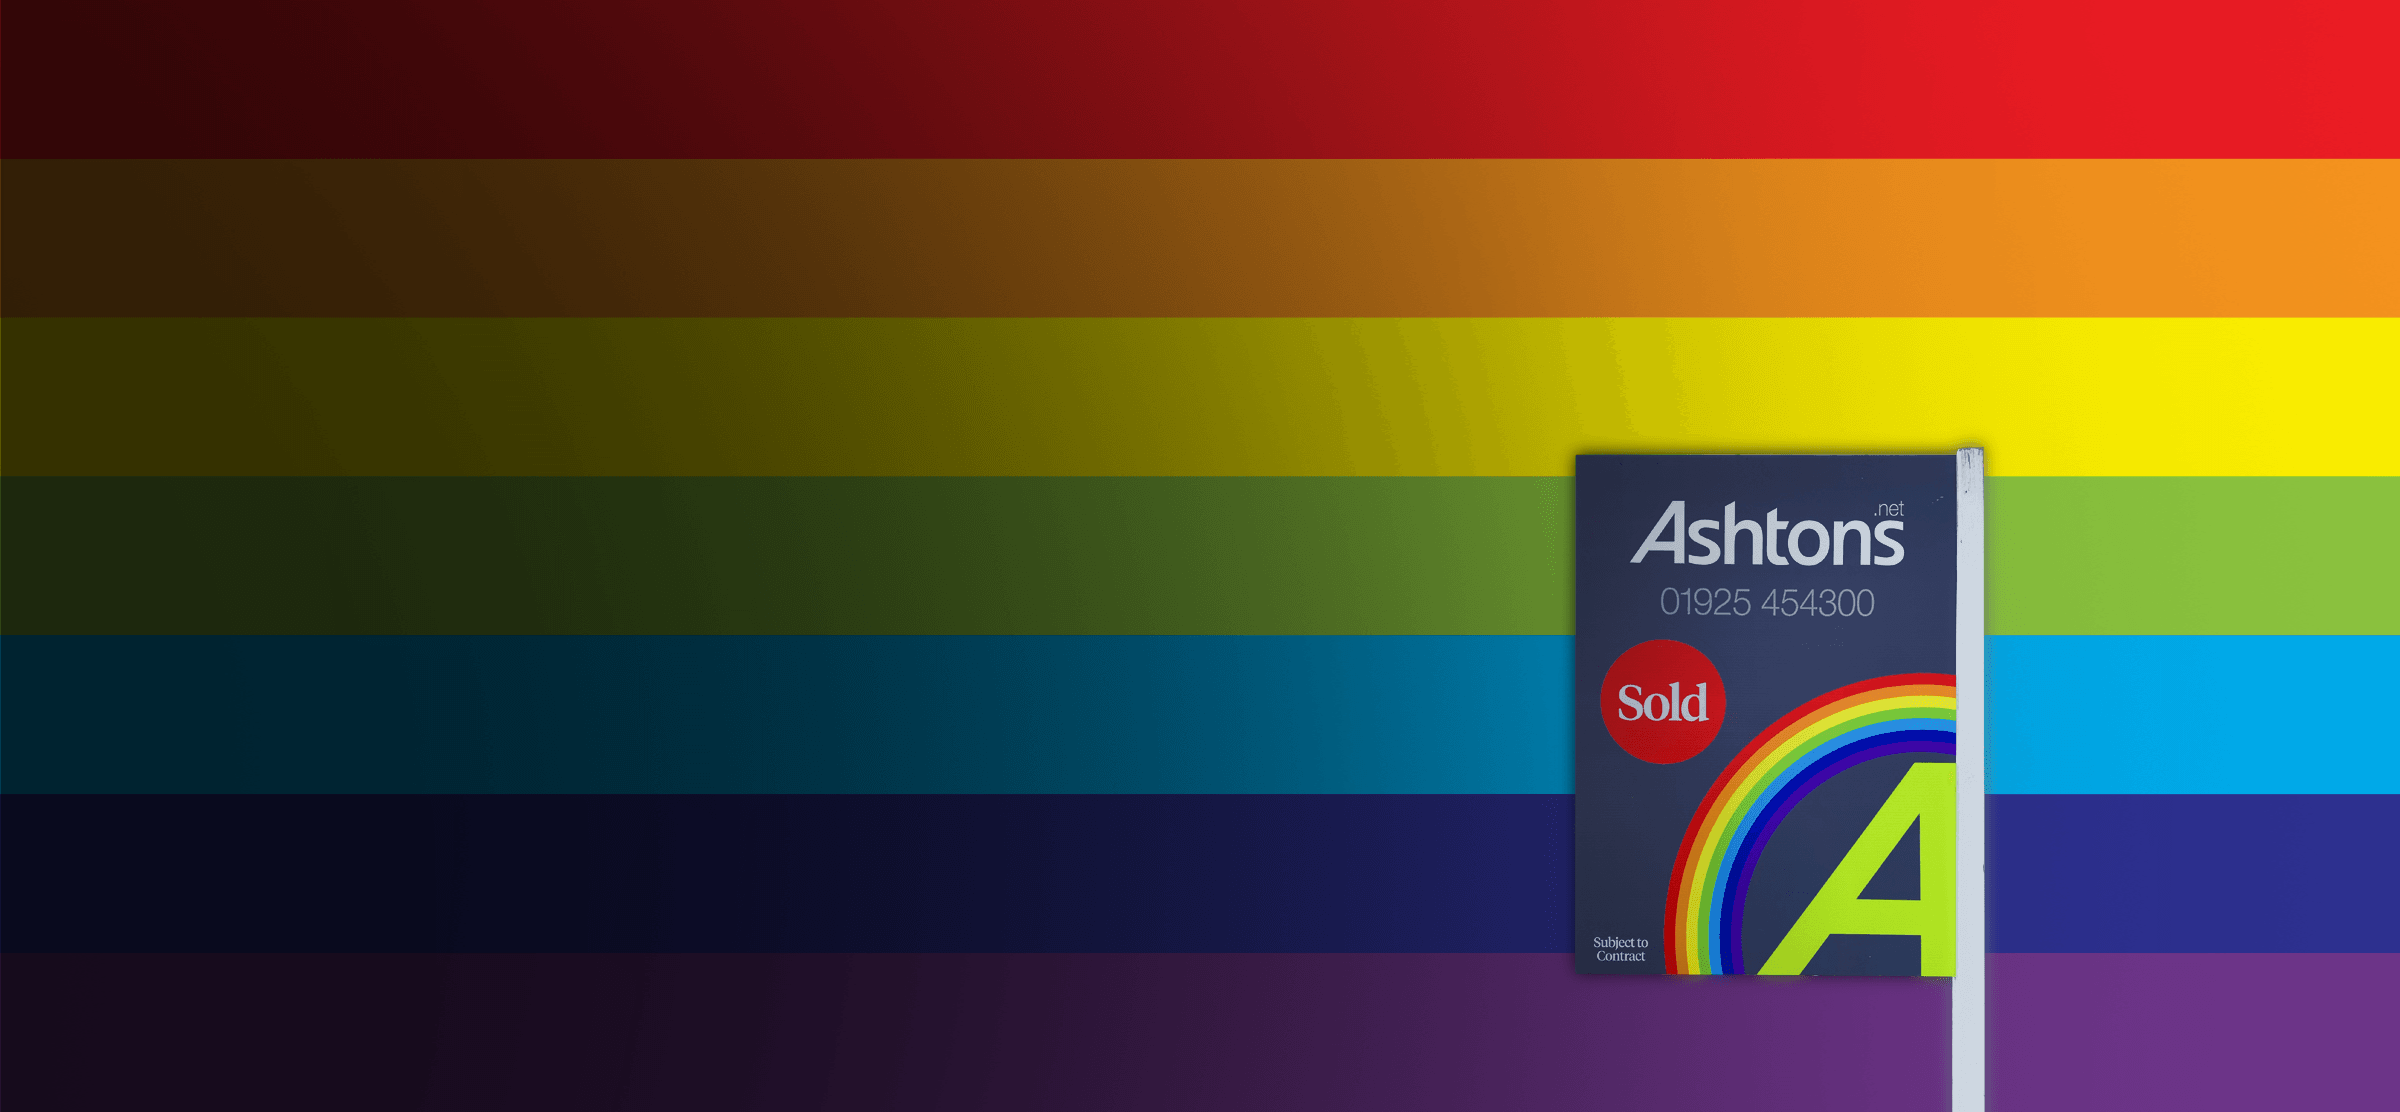 Ashtons Rainnbow For Sale Board, Warringto, Wigan, StHelens, Sell my house